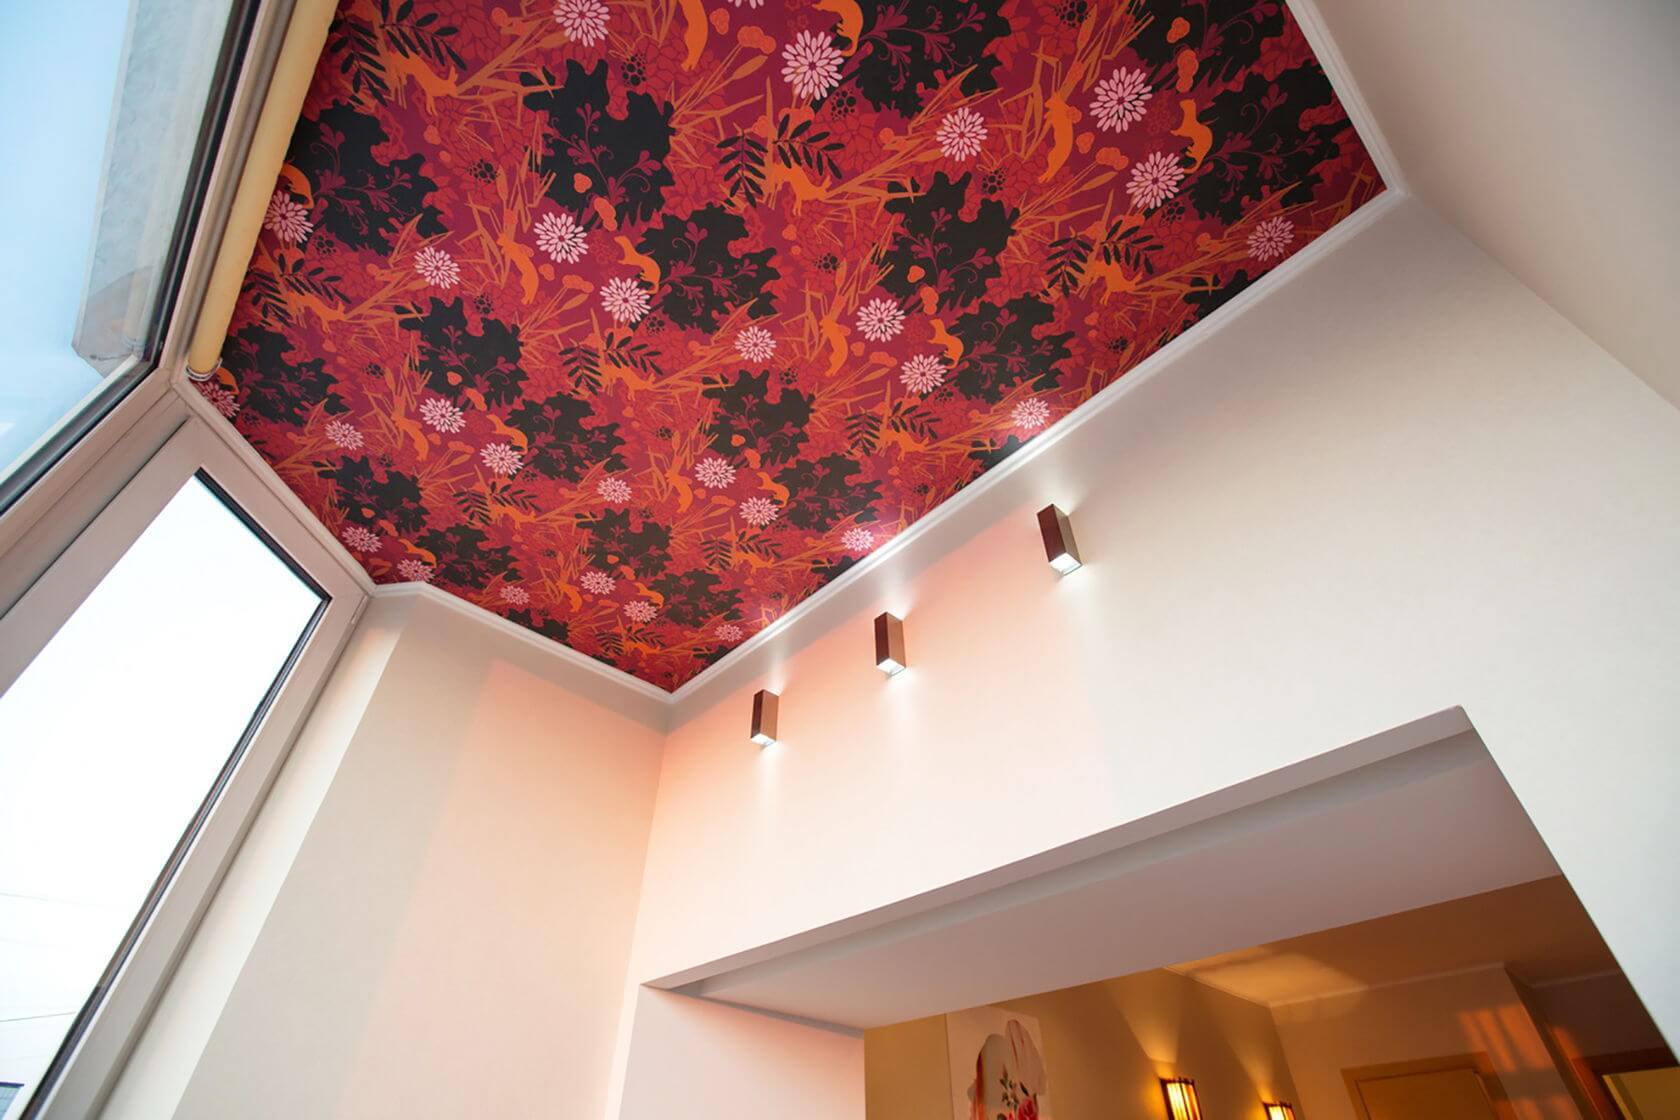 Bright red wallpaper at the balcone ceiling looks very fresh and intricately